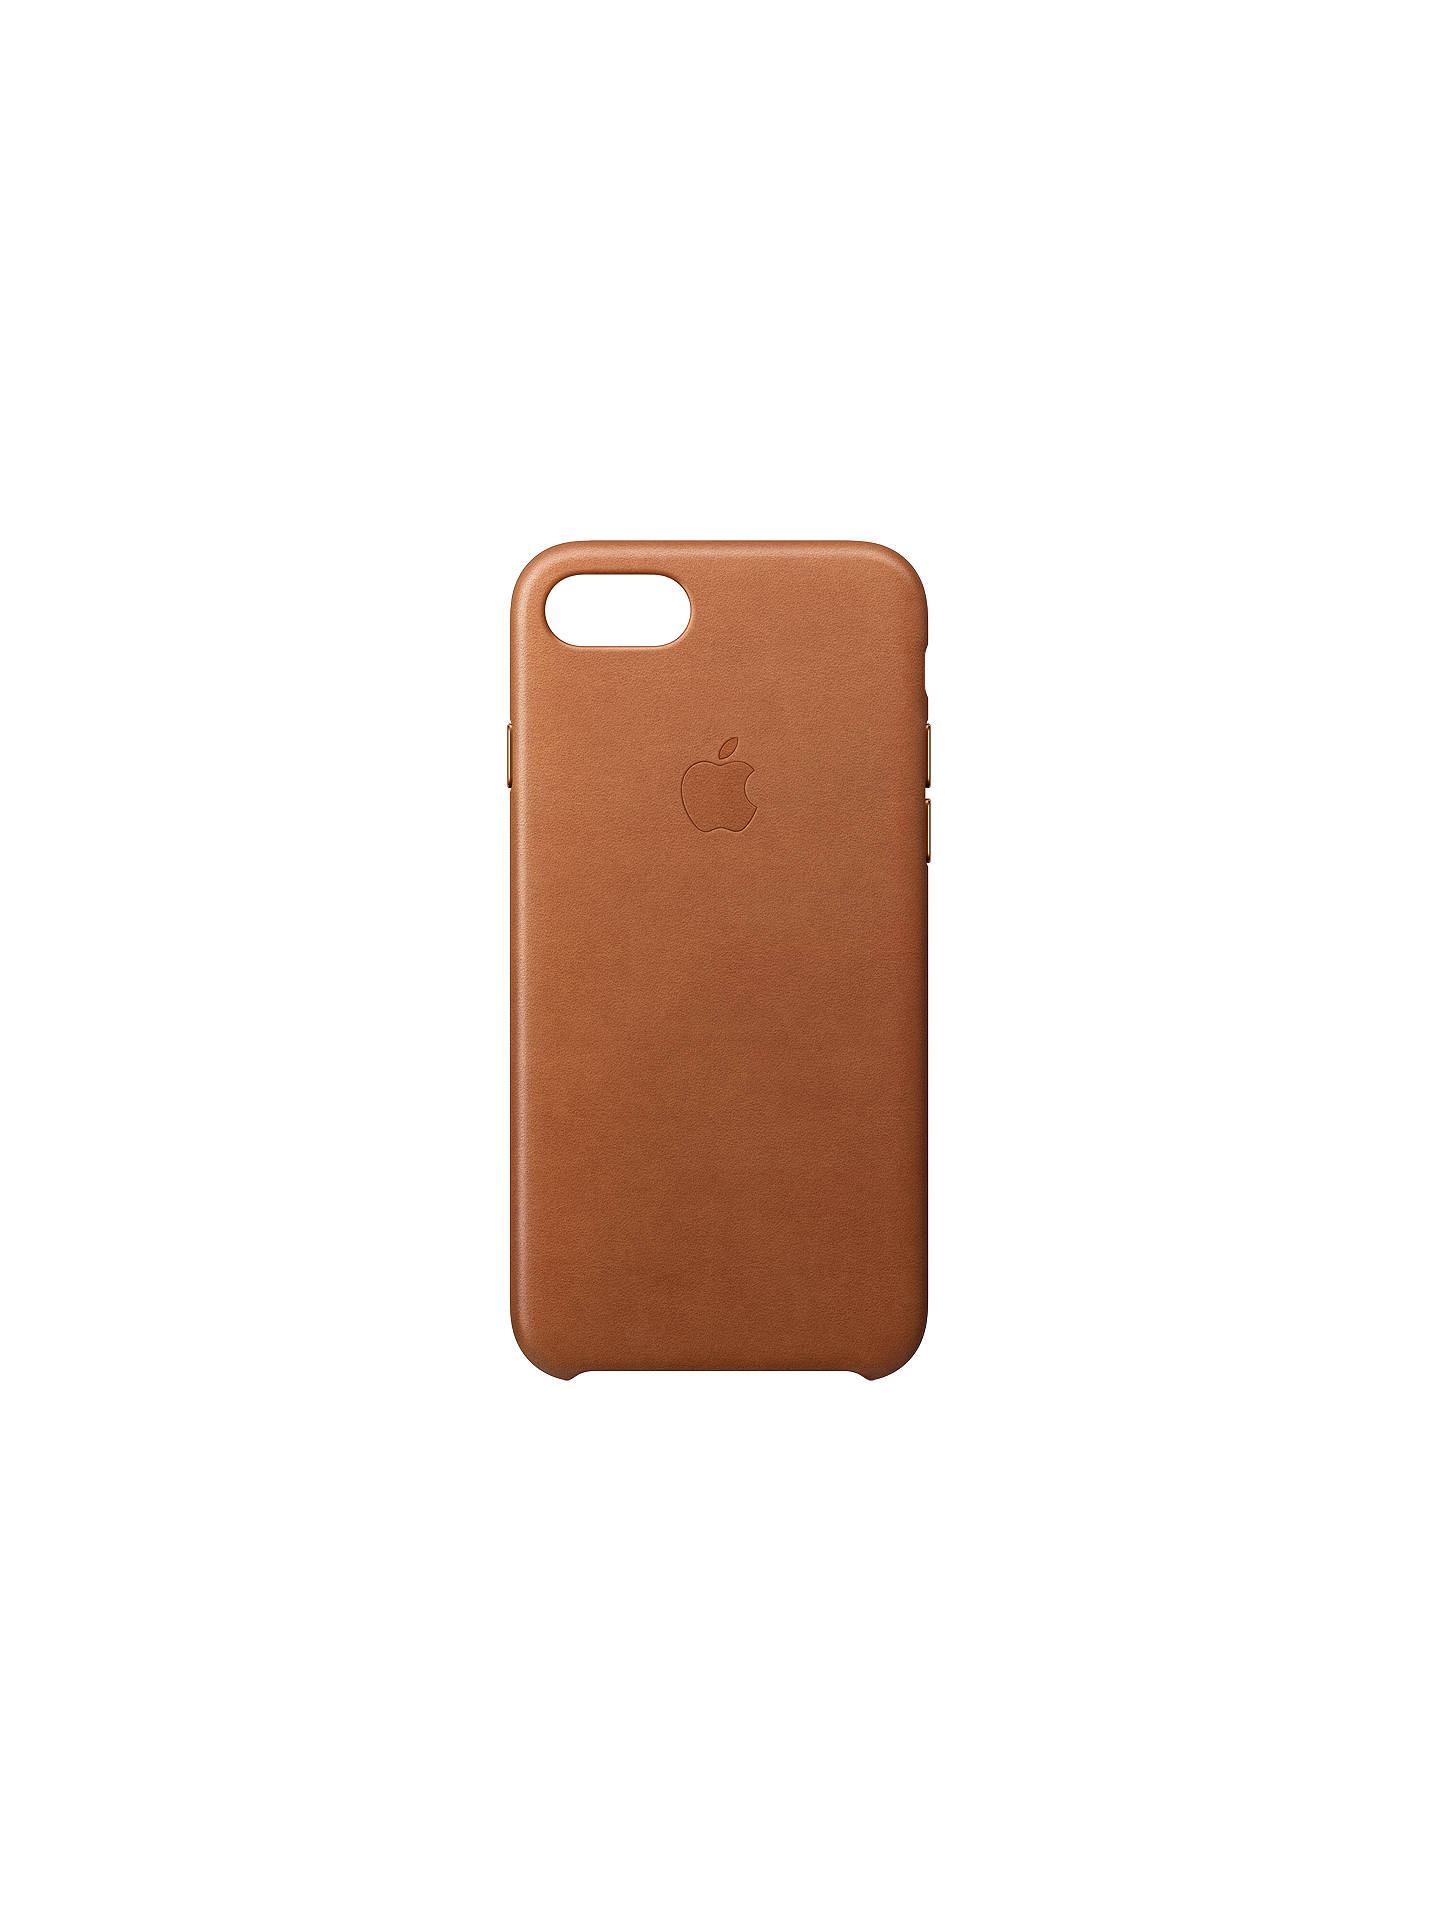 best website f2de6 fc16b Apple Leather Case for iPhone 8, Saddle Brown